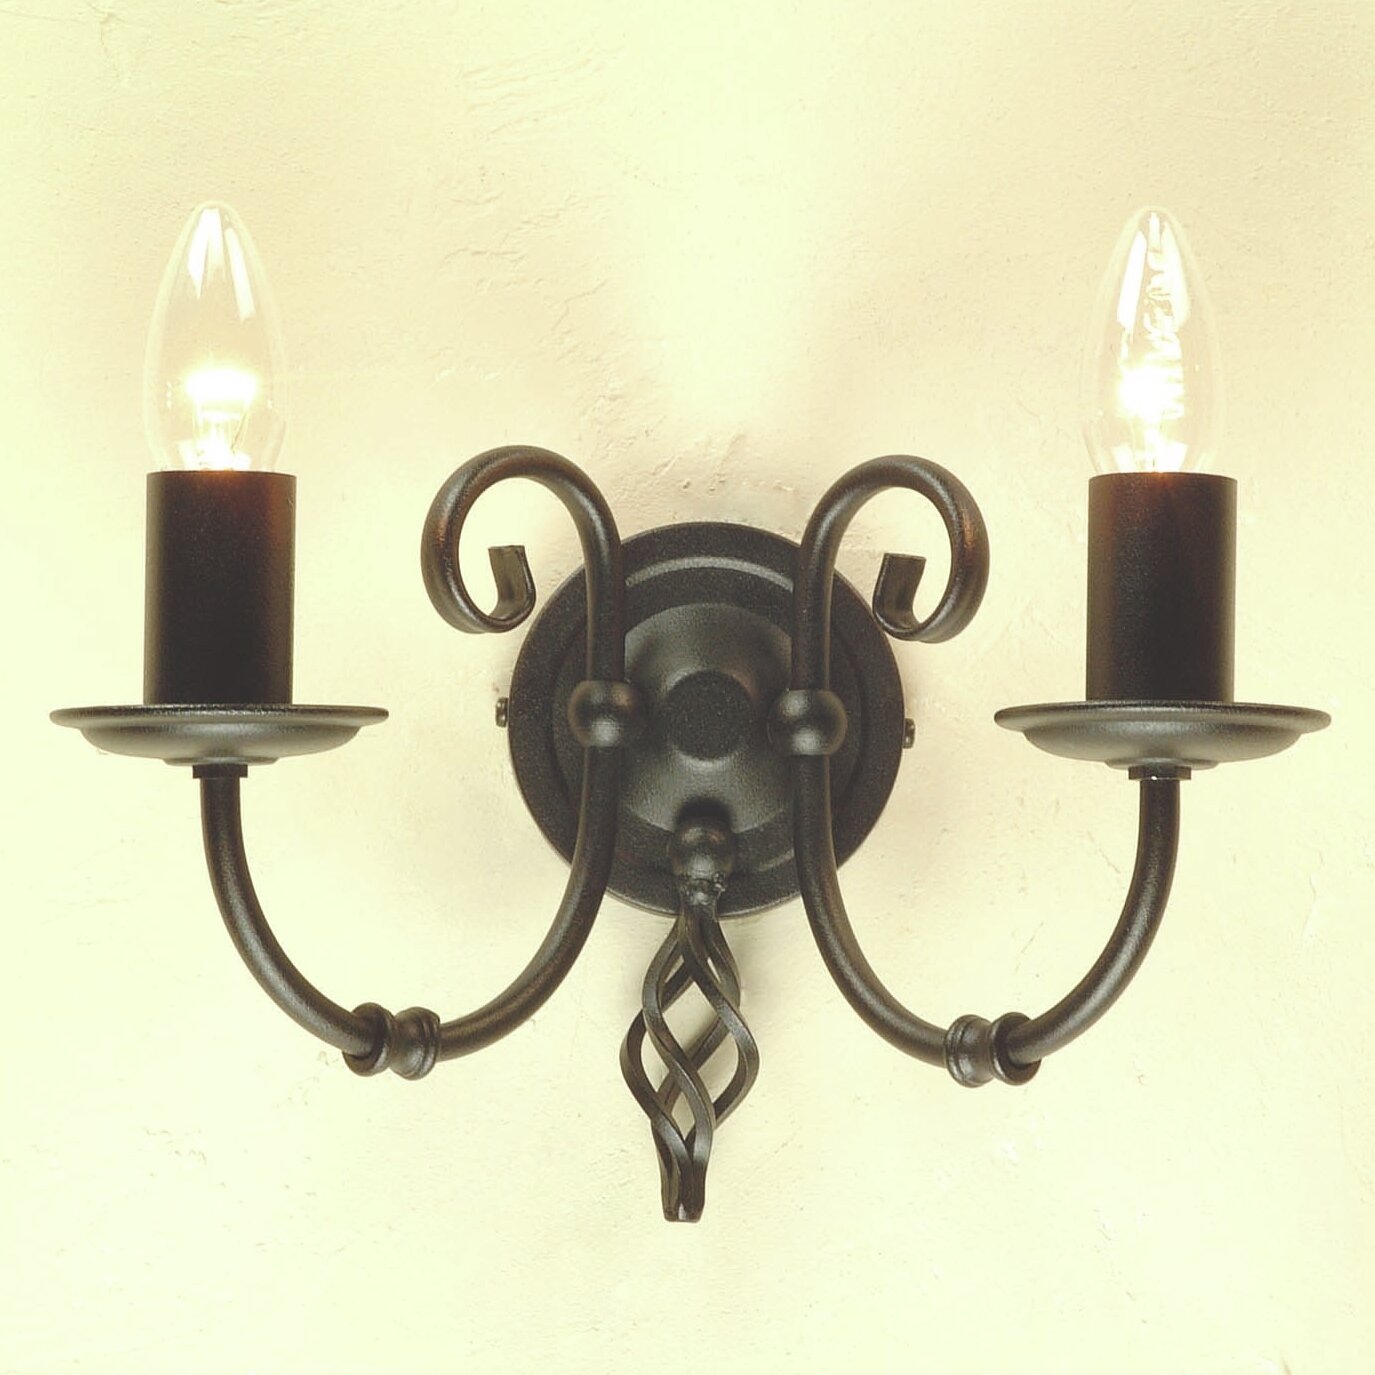 Glass Candle Wall Lights : Elstead Lighting Artisan 2 Light Candle Wall Light & Reviews Wayfair UK